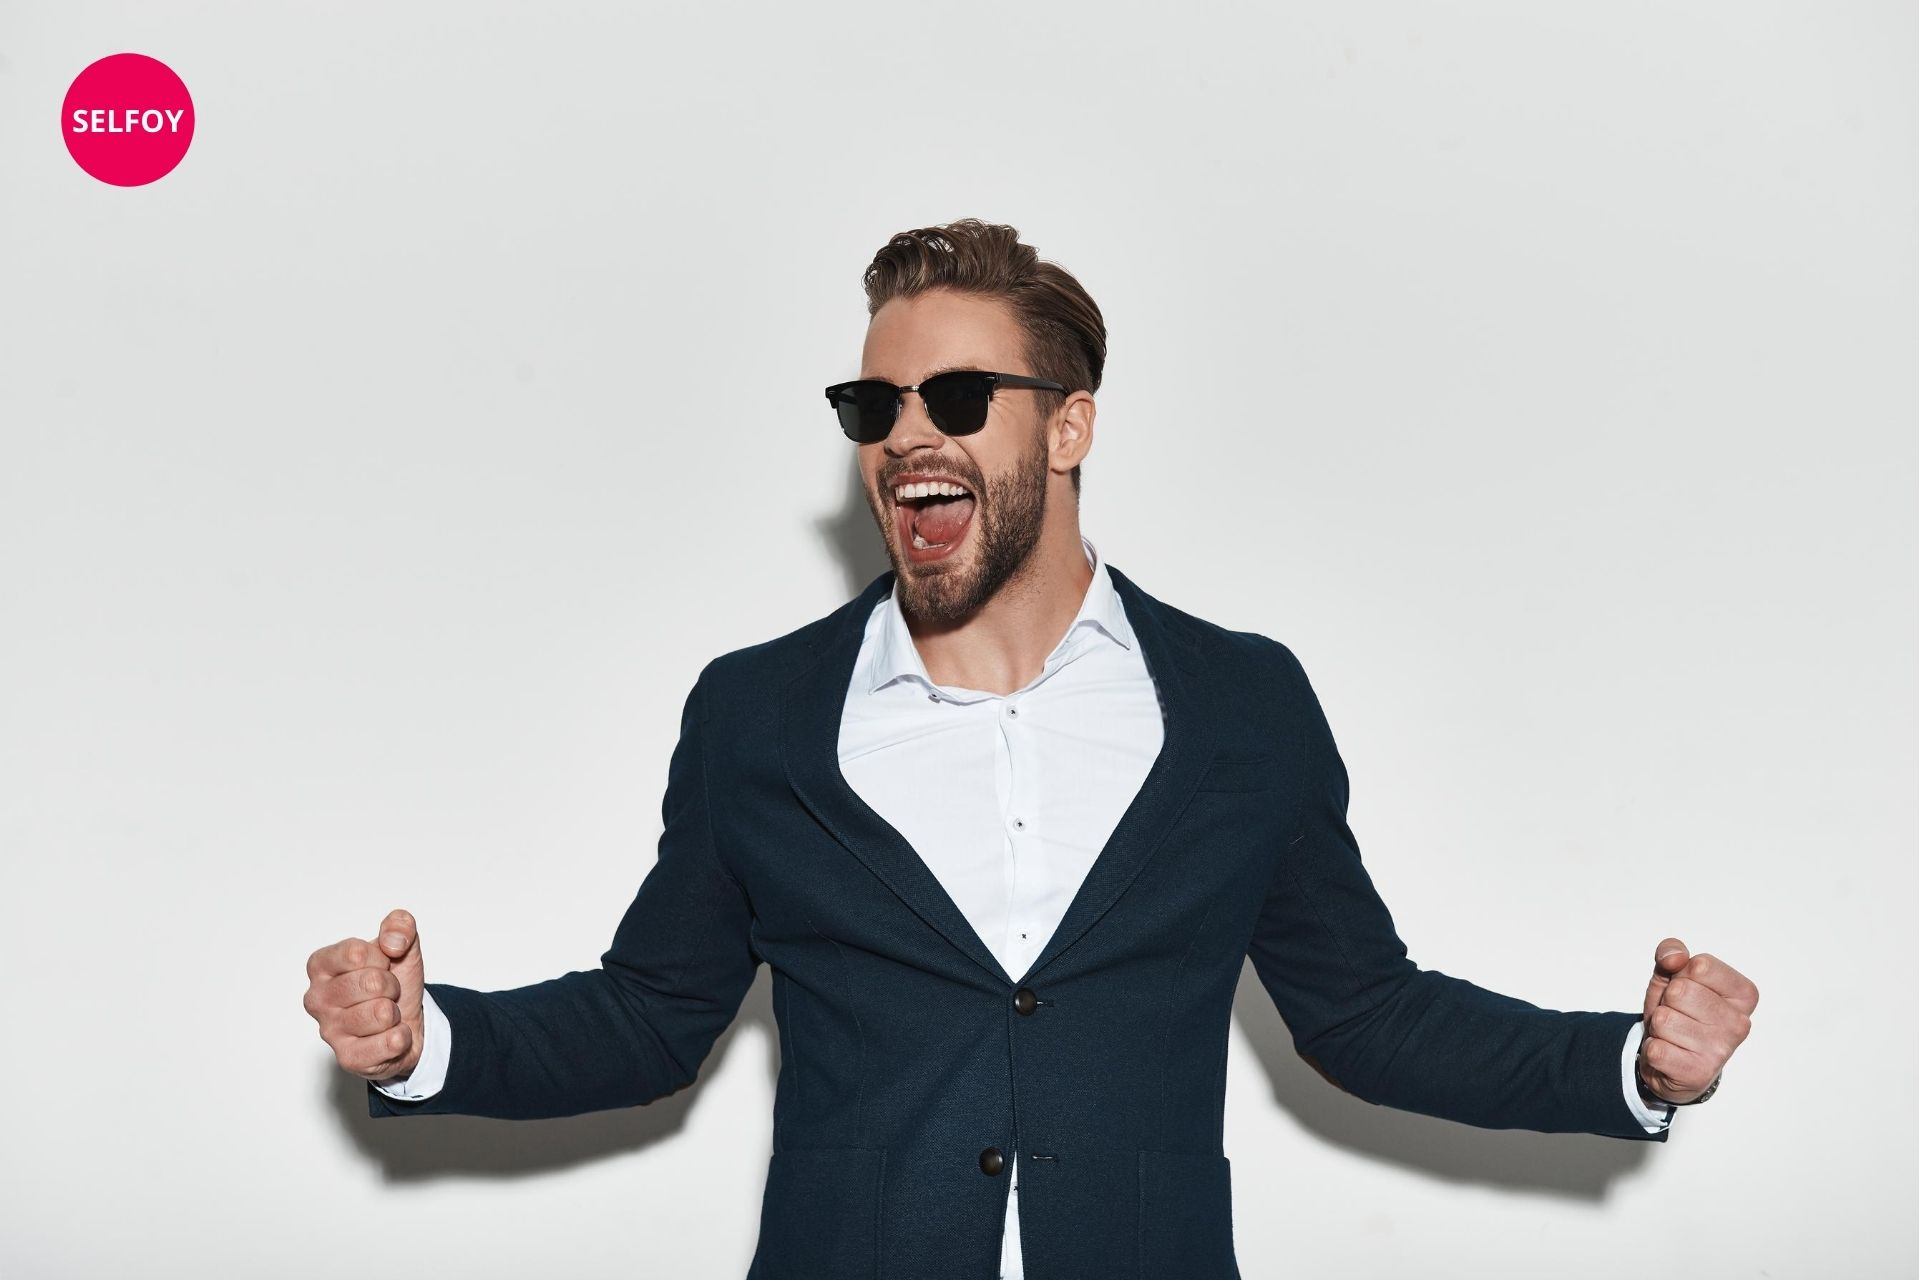 man wearing a black suit and black goggle cheering up